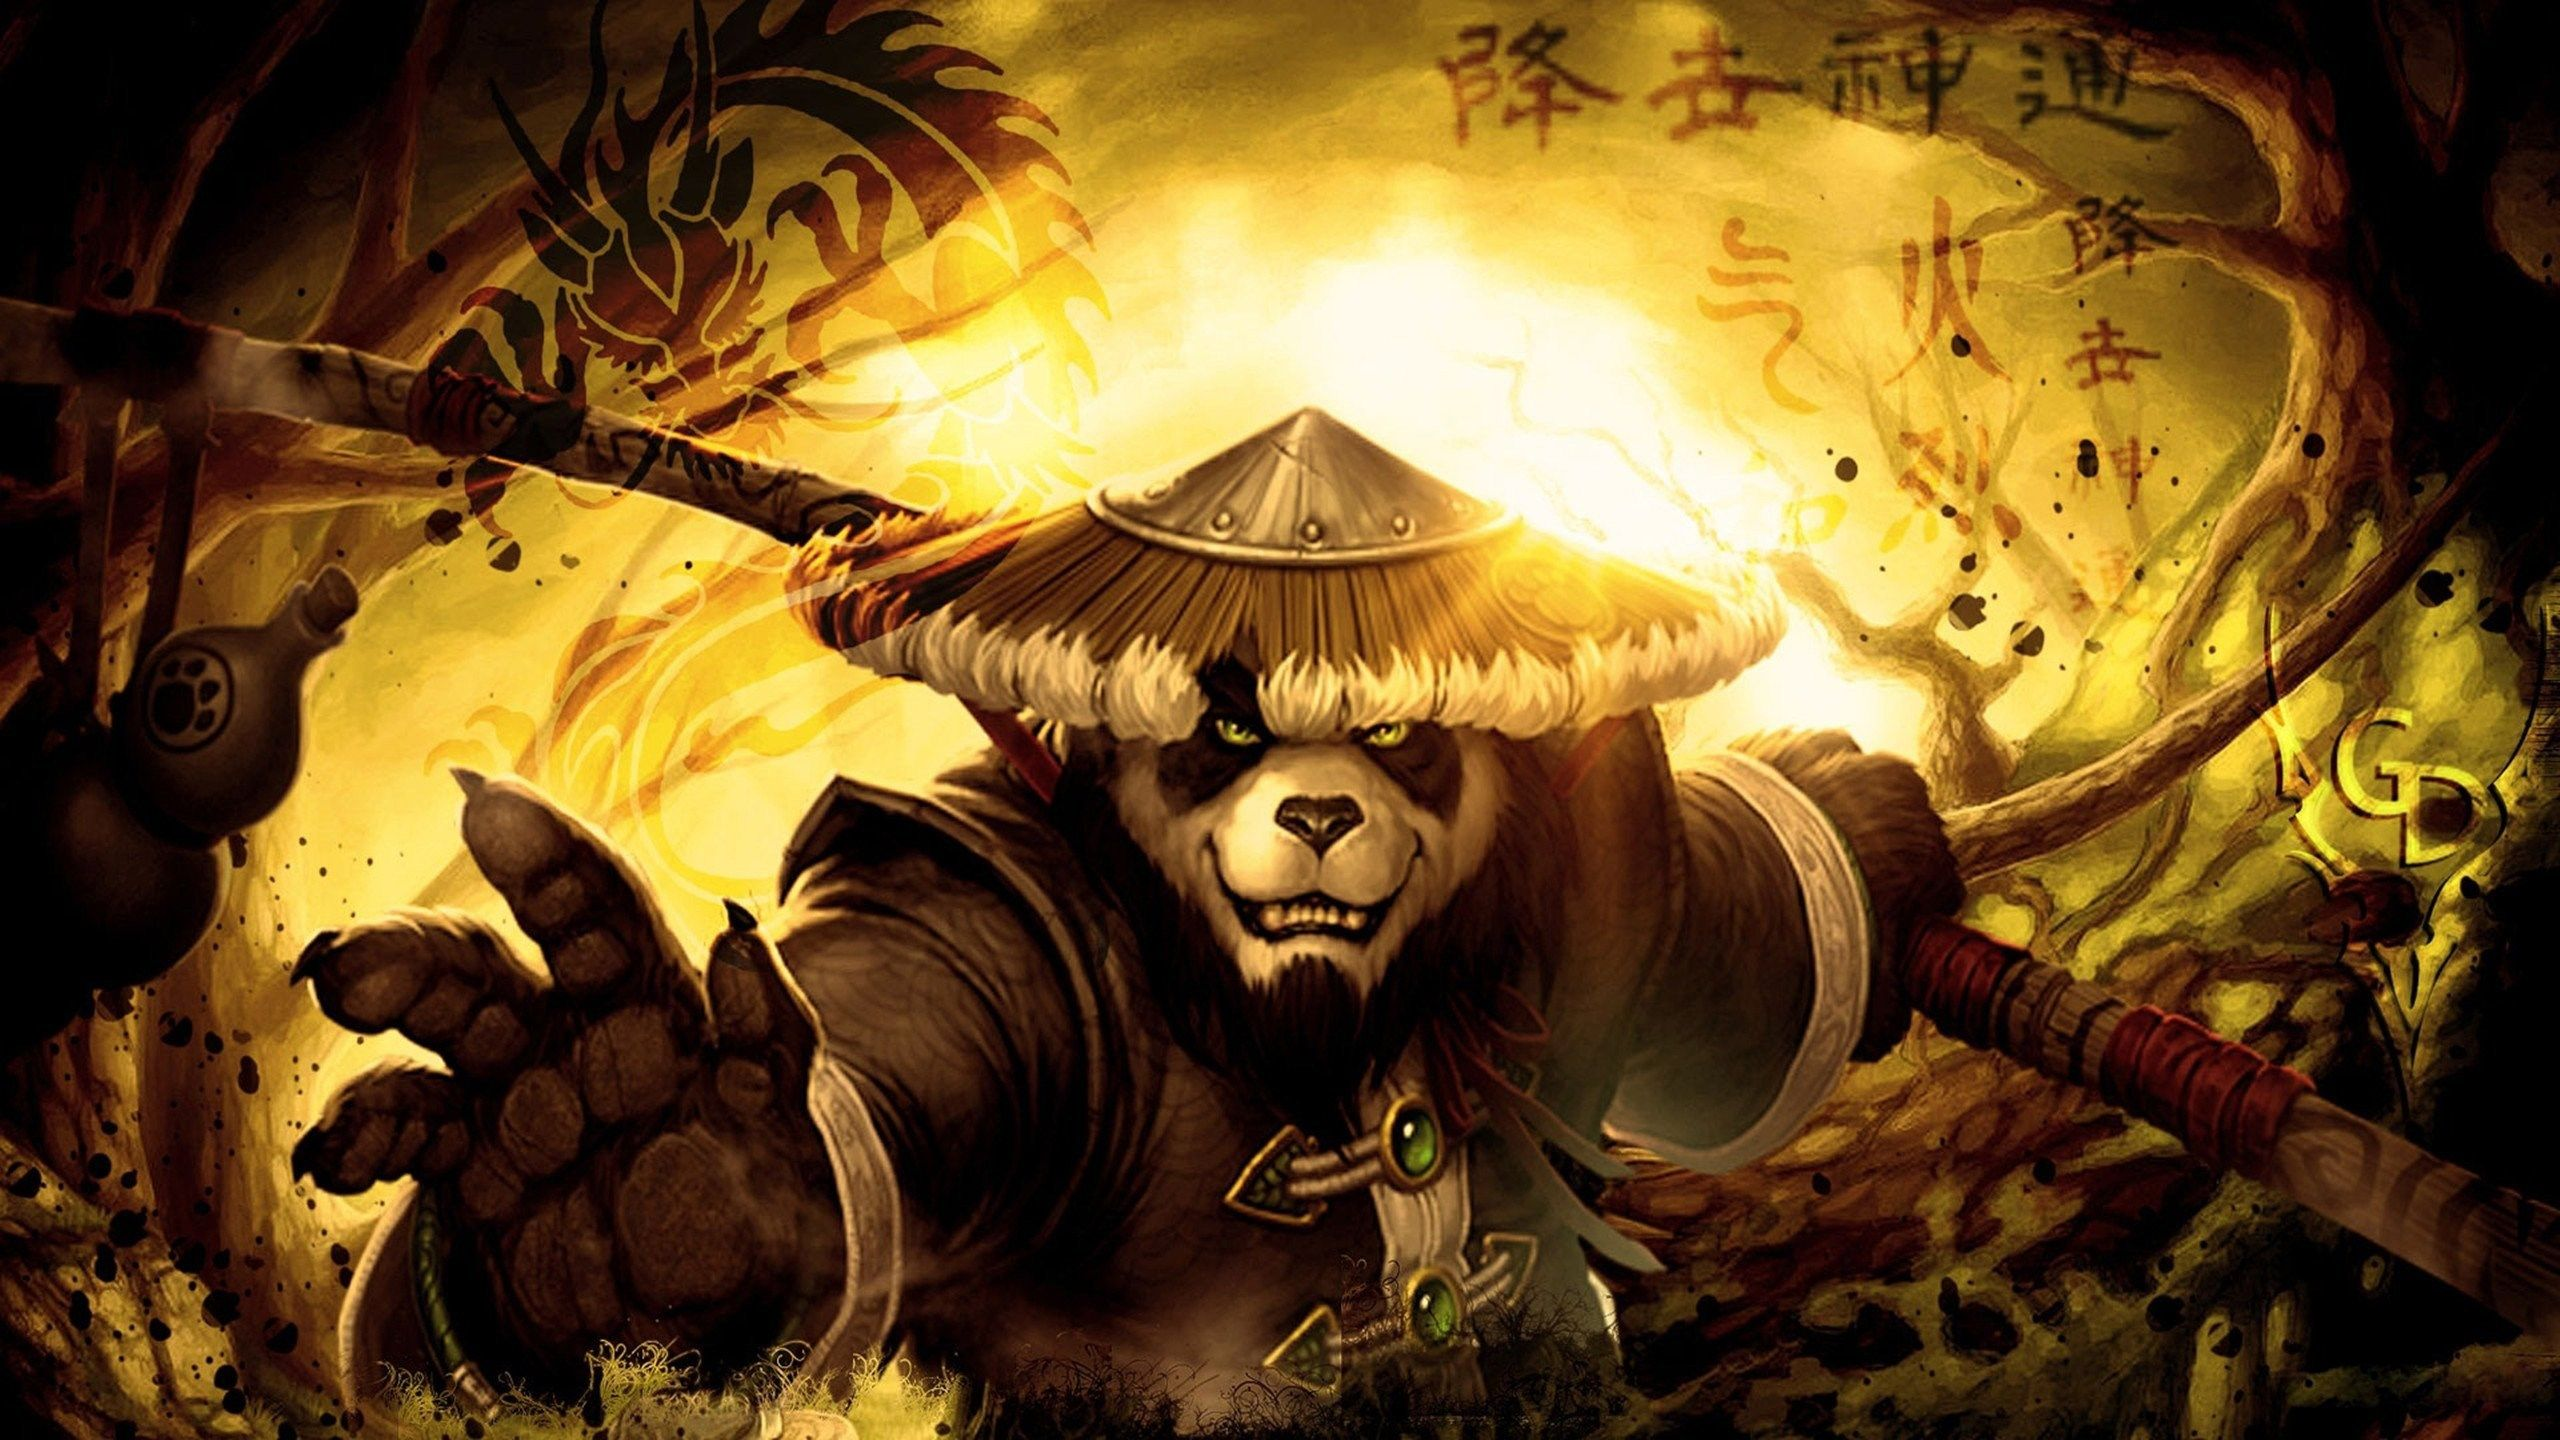 world of warcraft wallpapers christmas mists pandaria - World Of Warcraft Christmas